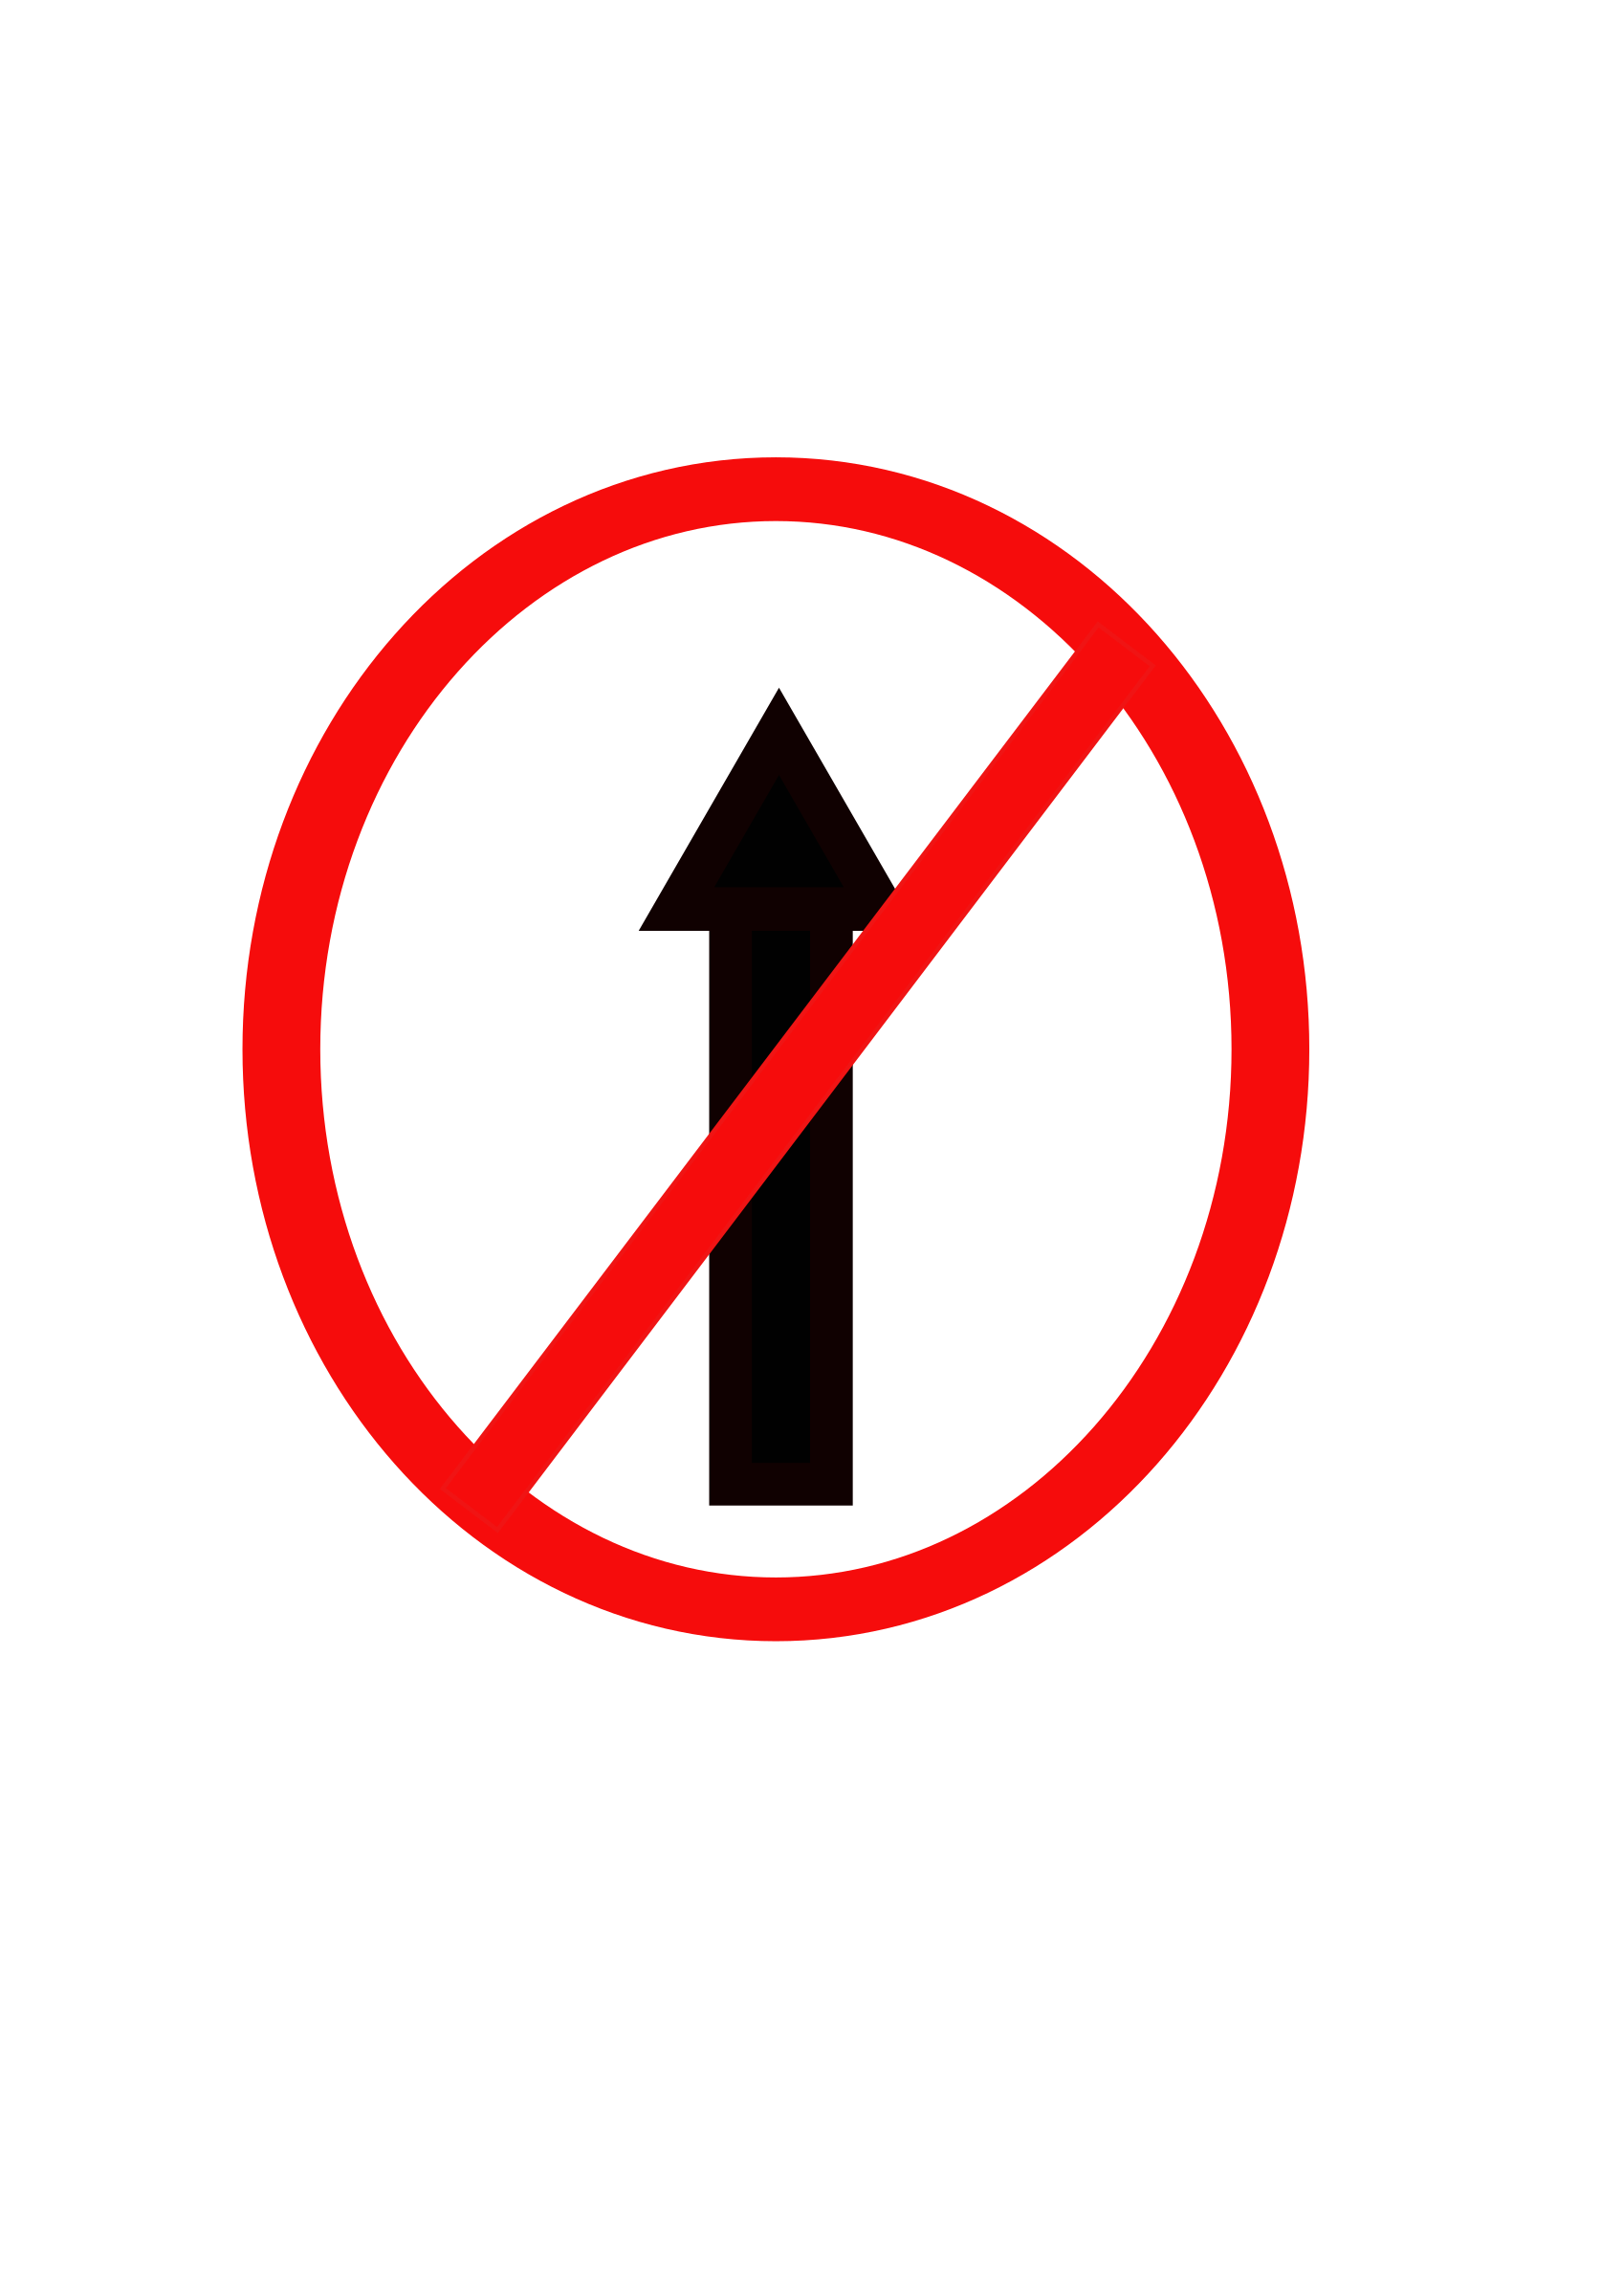 Free entry png. Indian road sign no